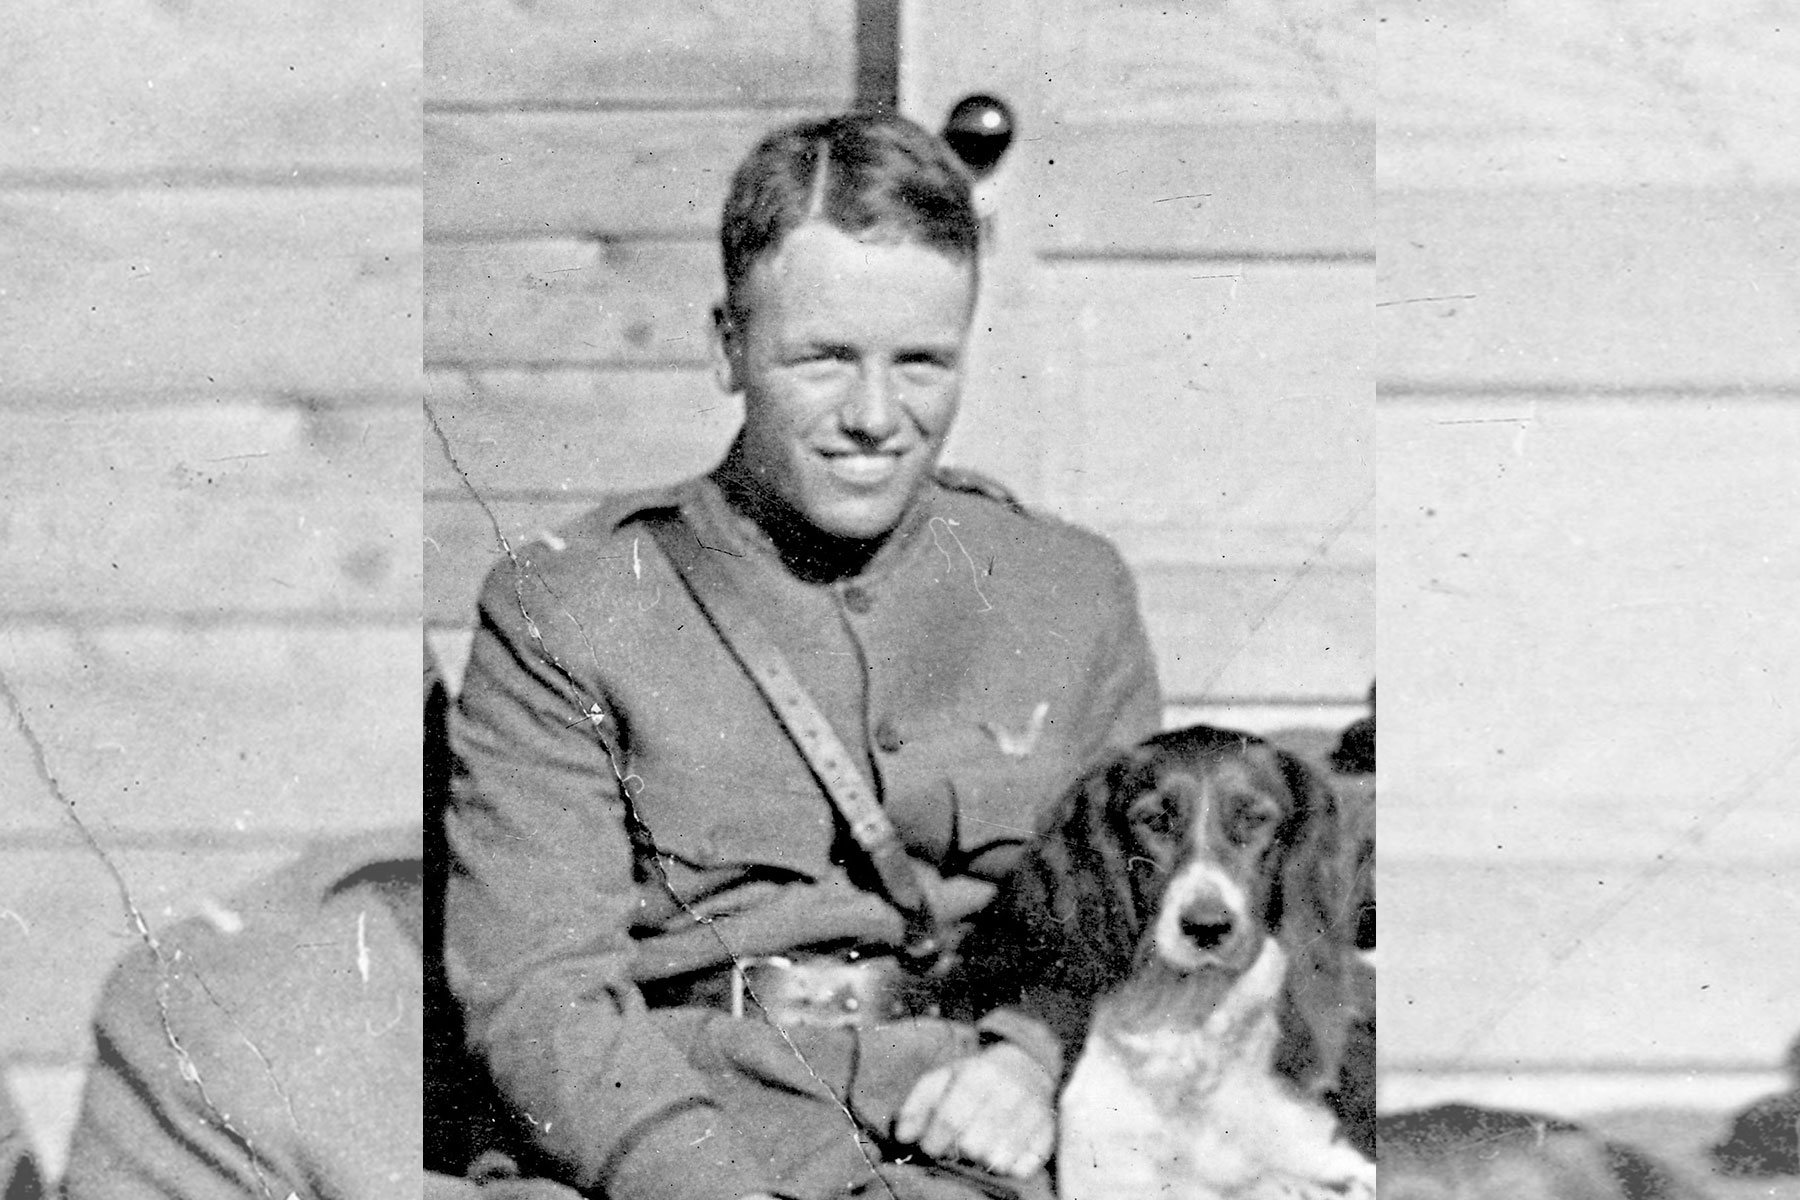 This President's Son Was One of the Most Famous WWI Deaths